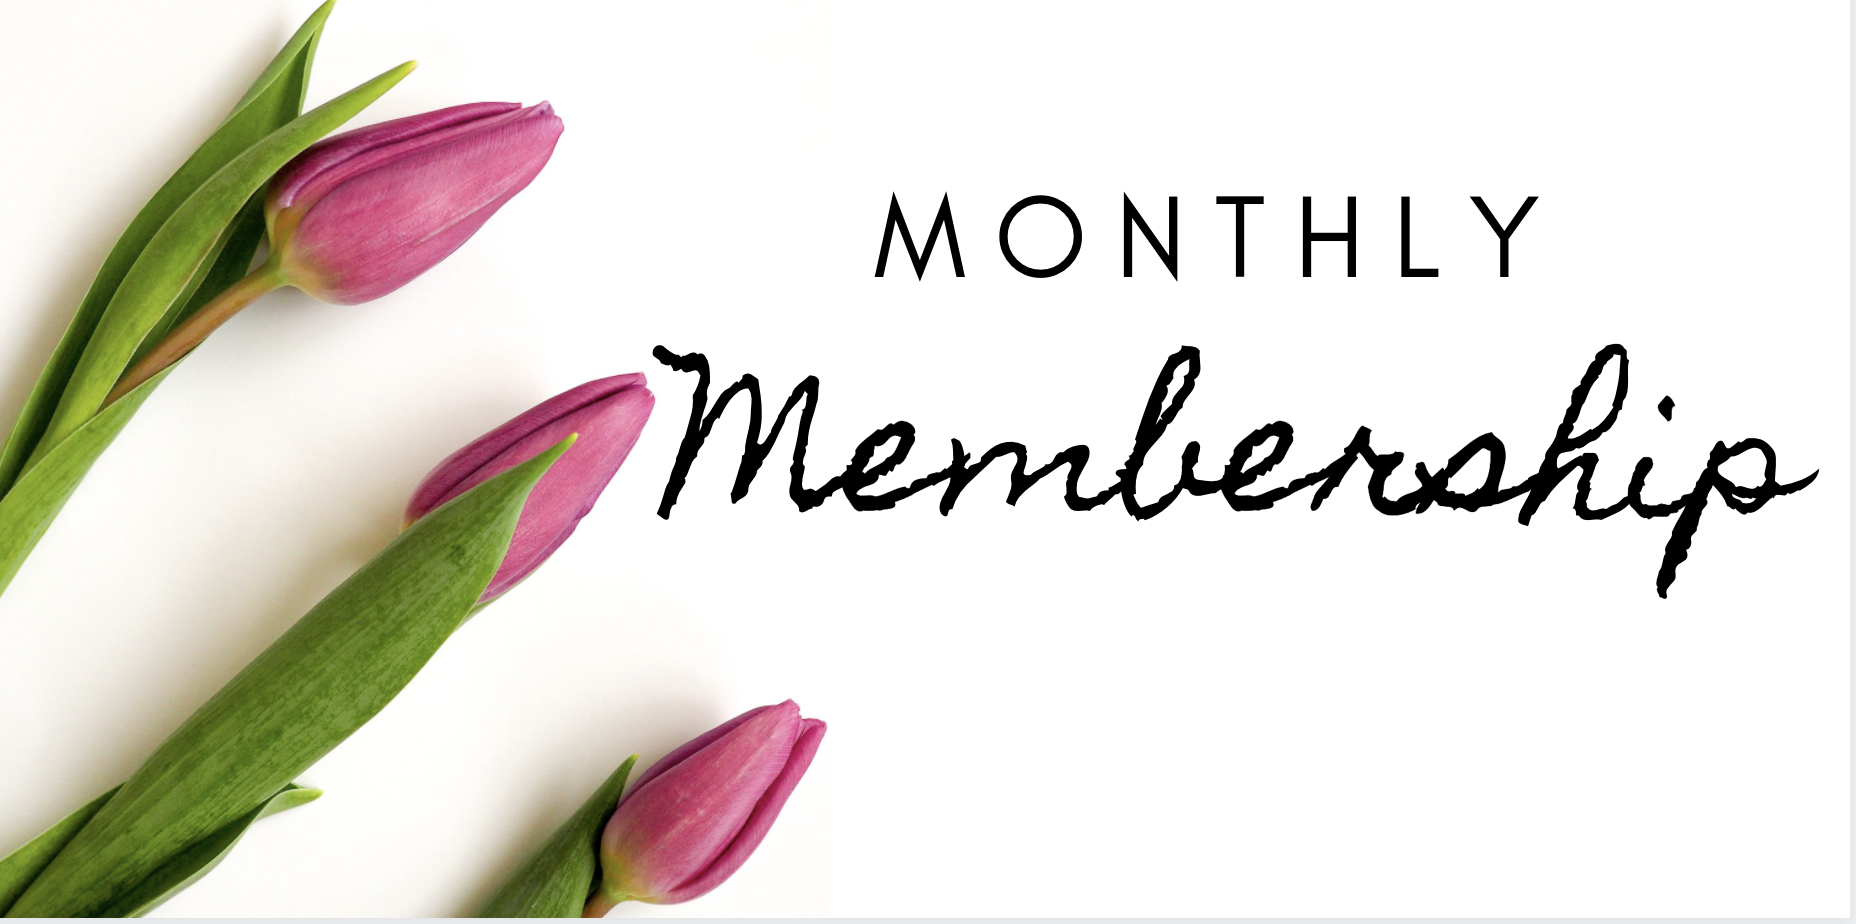 NEW MONTHLY MEMBERSHIP